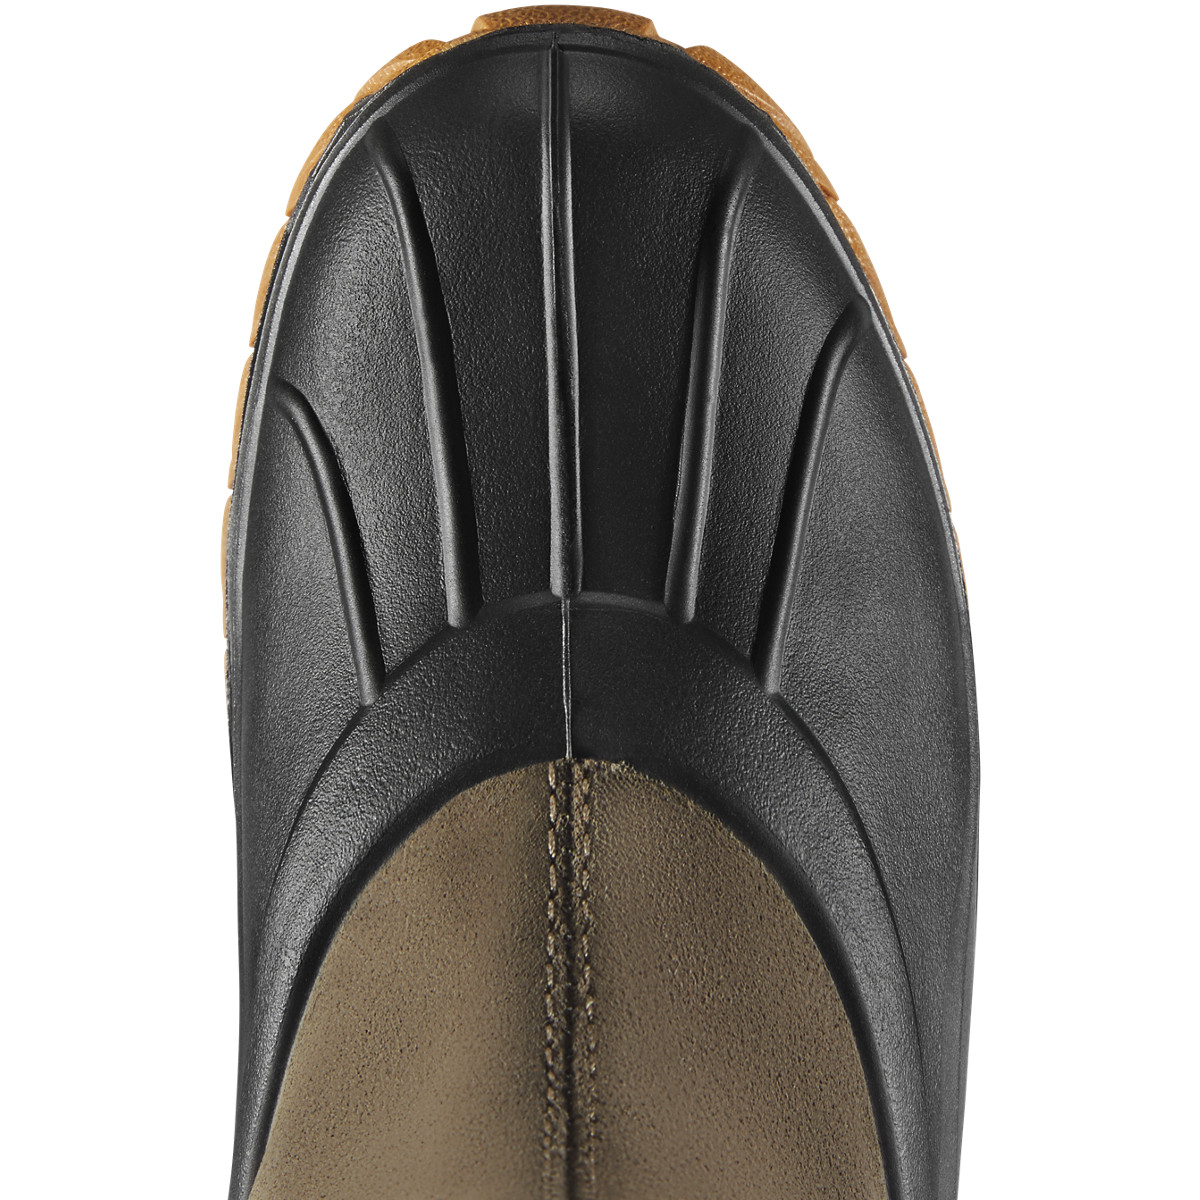 "Aero Timber Top Slip-On 6"" Gray/Black"